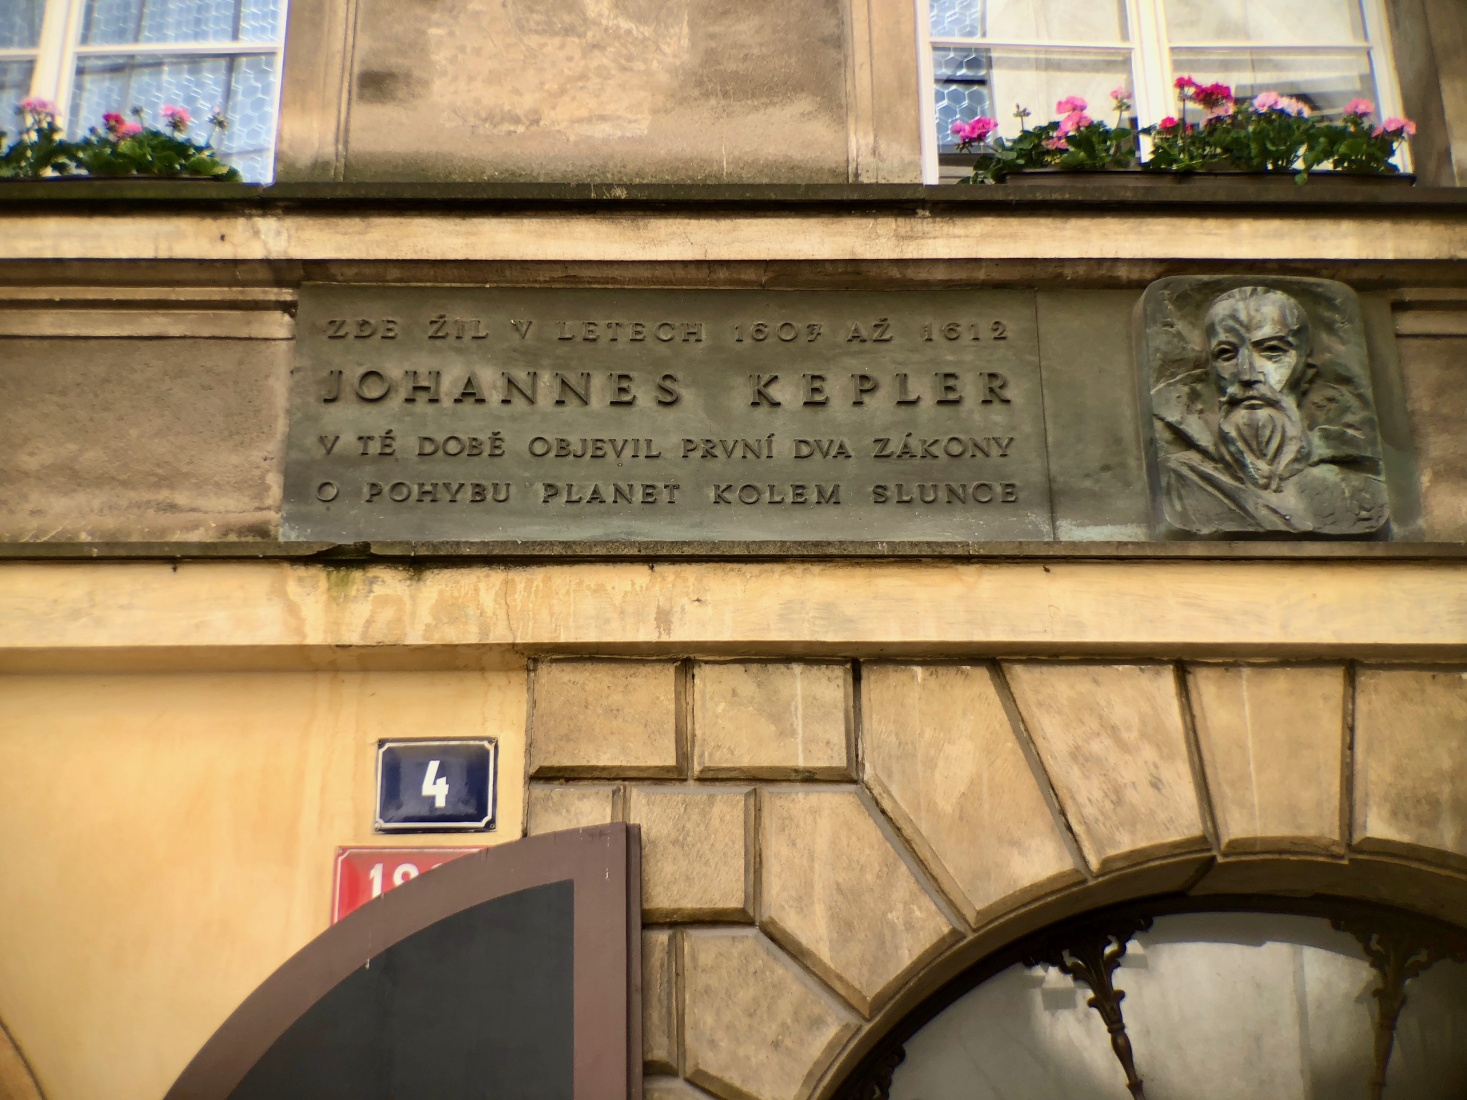 The relief on the front of the house at Karlova 4 in Prague's Old Town marks the spot where Johannes Kepler lived from 1607-1612.